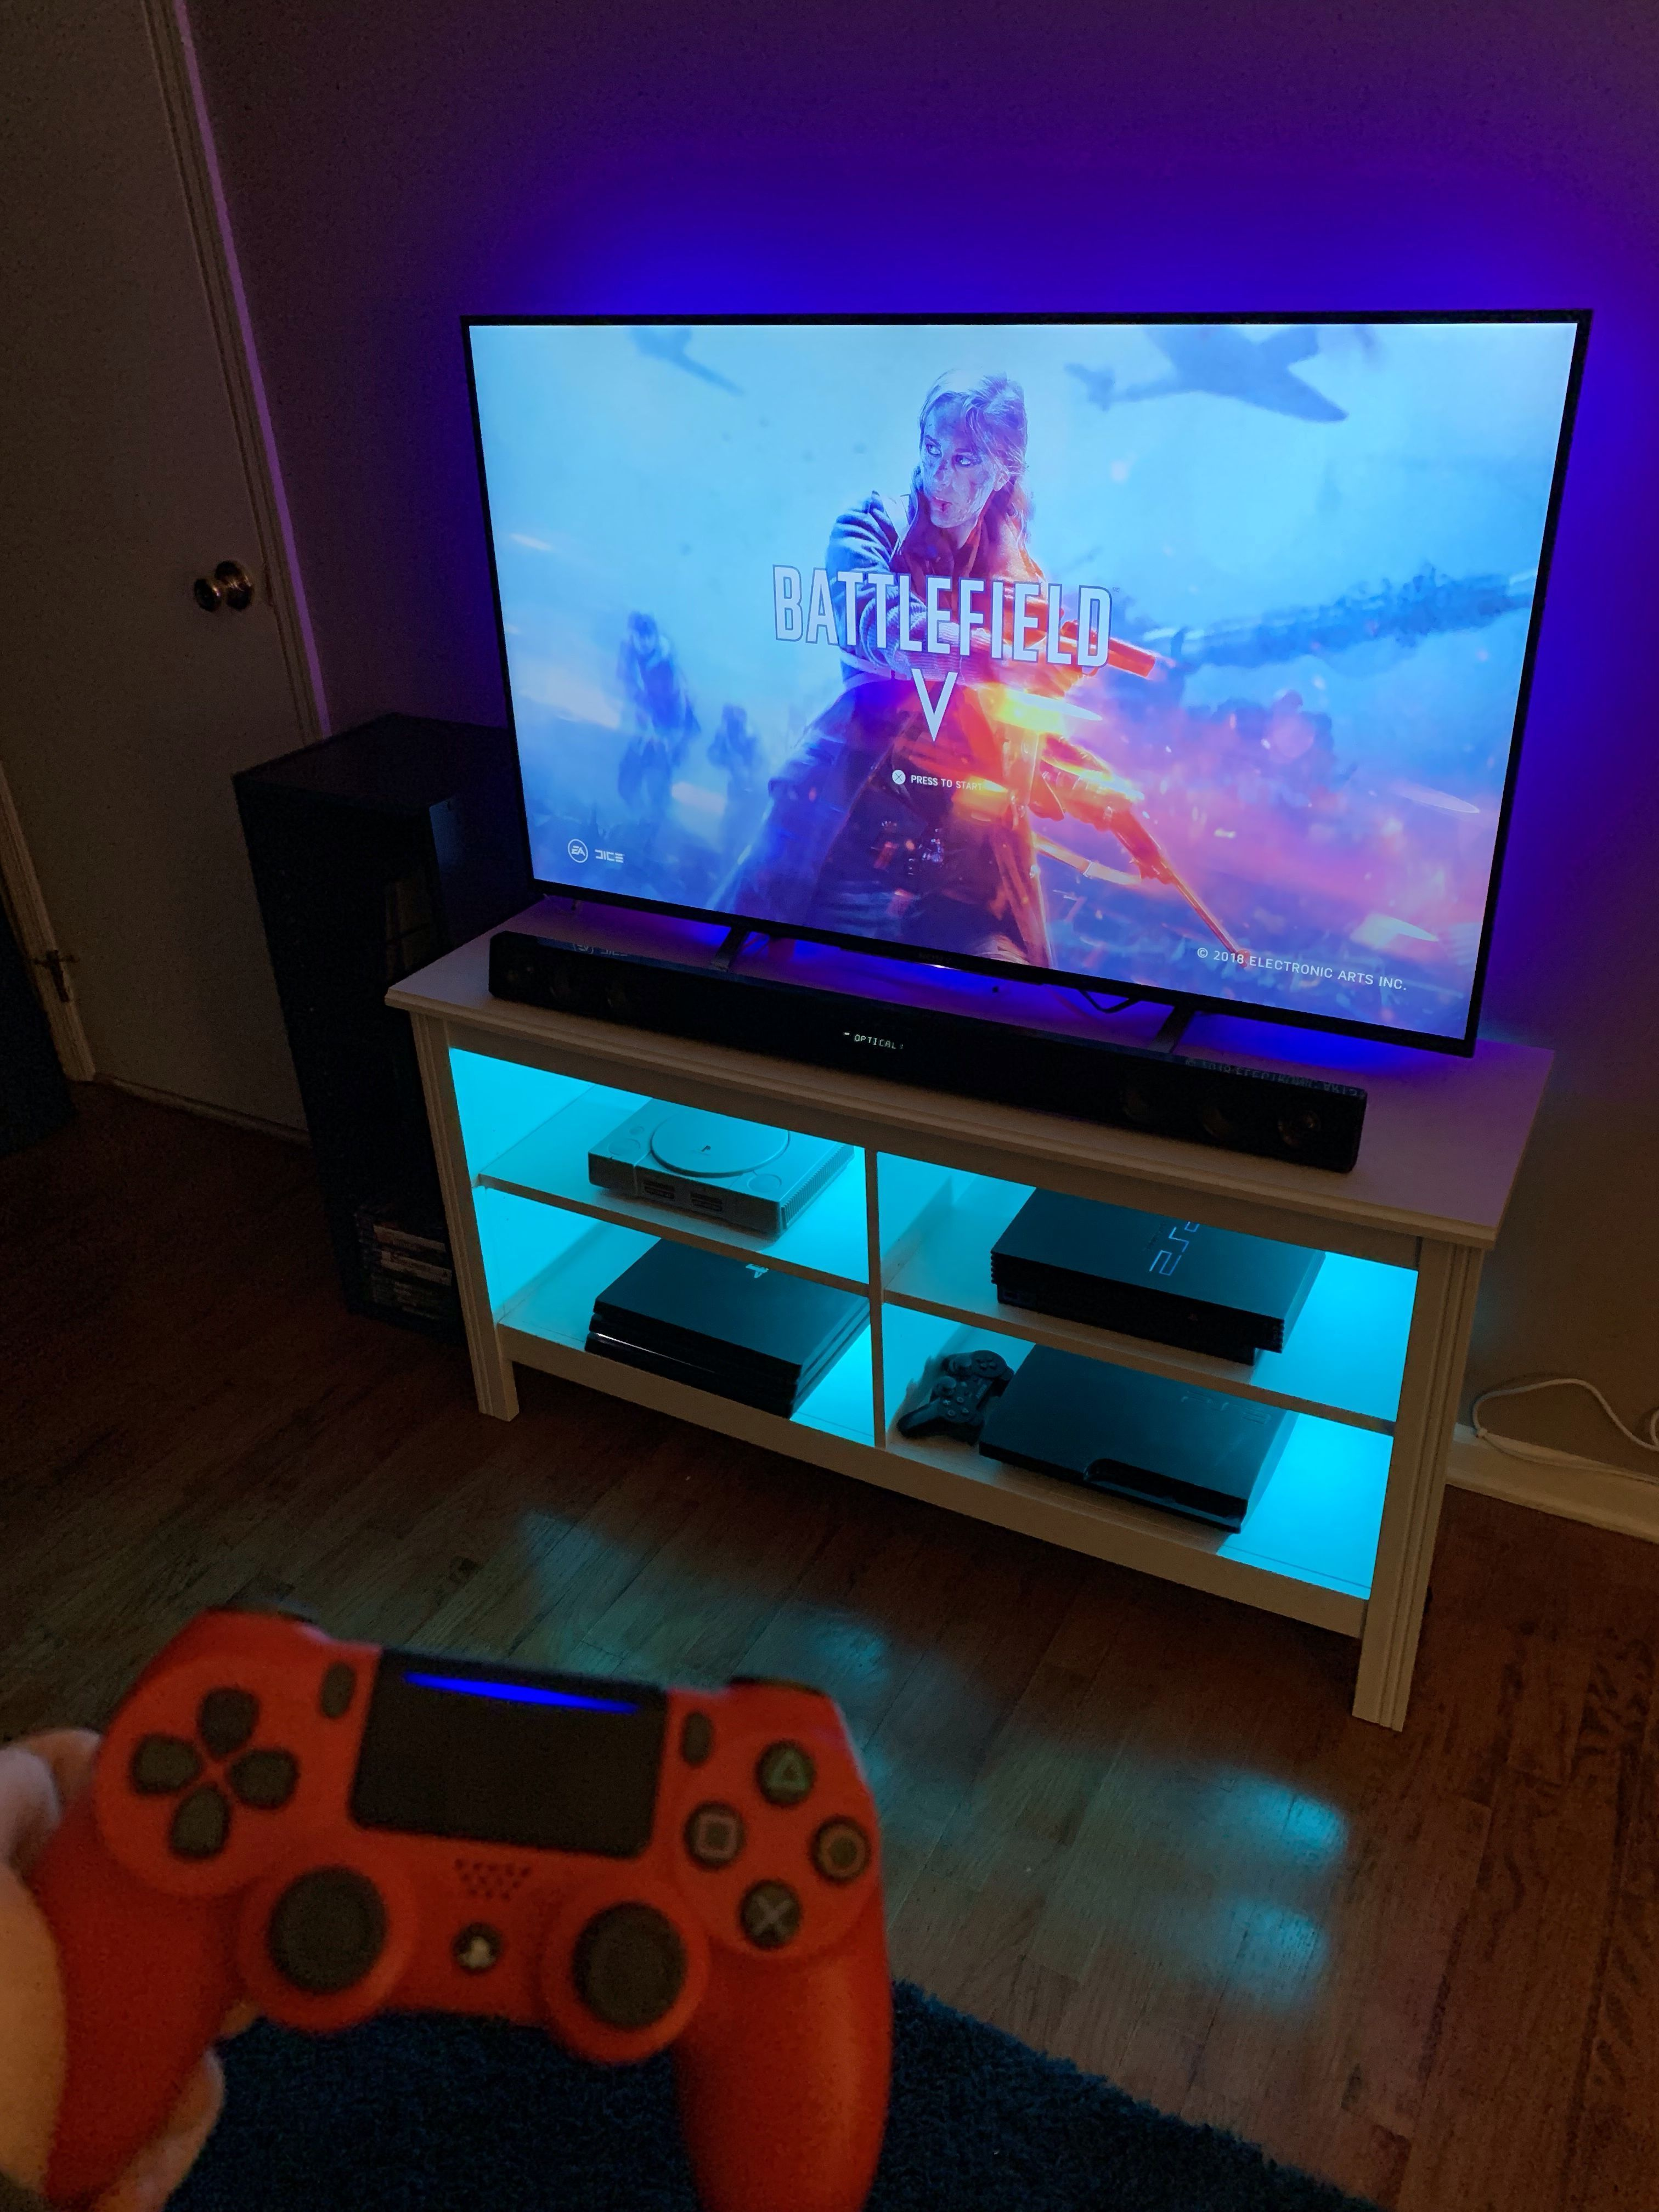 Play Station Room Gaming Room Video Game Room Game Face Ready Play Zones Epic Game Room Gamesroom Video Game Rooms Video Game Room Video Games Ps4 Ps4 gaming bedroom ideas